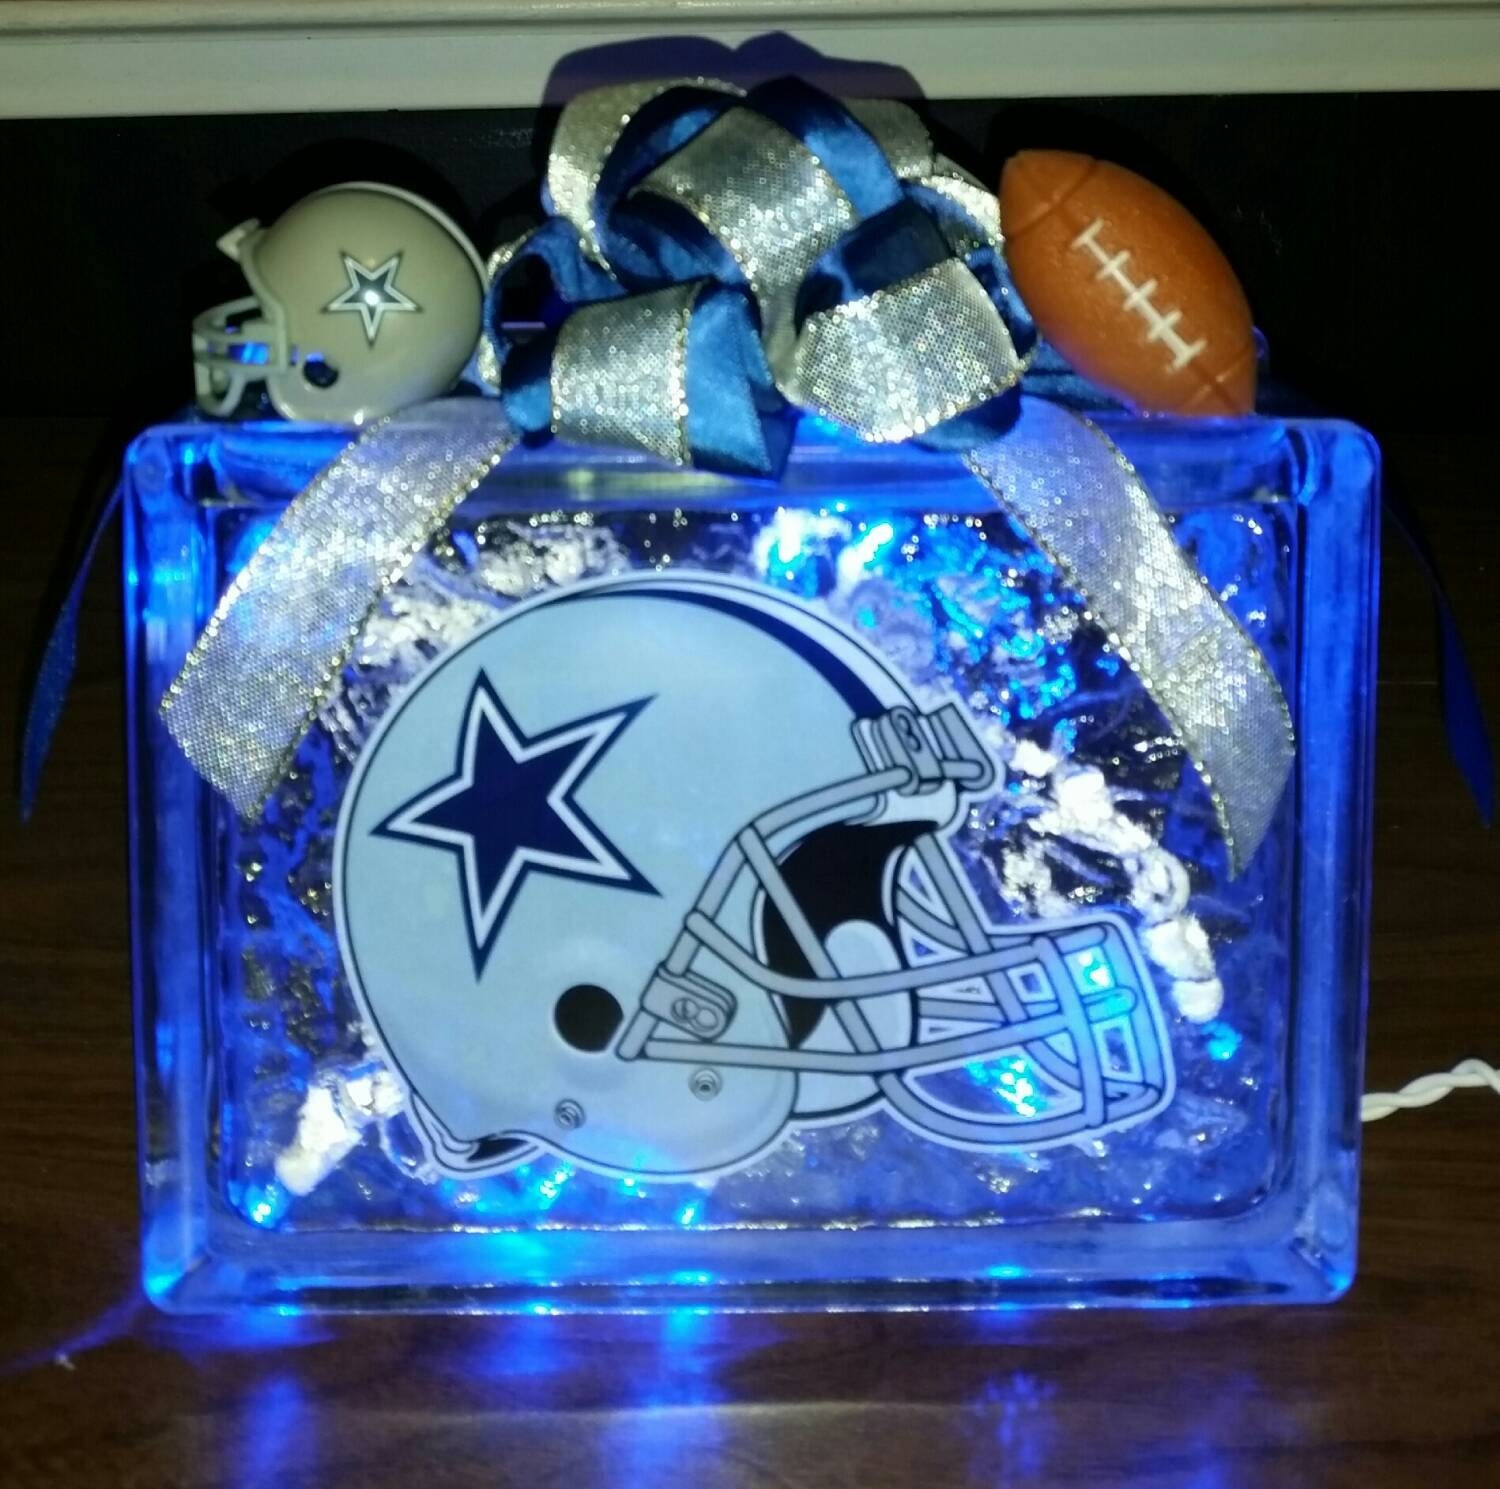 Dallas cowboys helmet decal lighted glass block nightlight and for Clear glass blocks for crafts